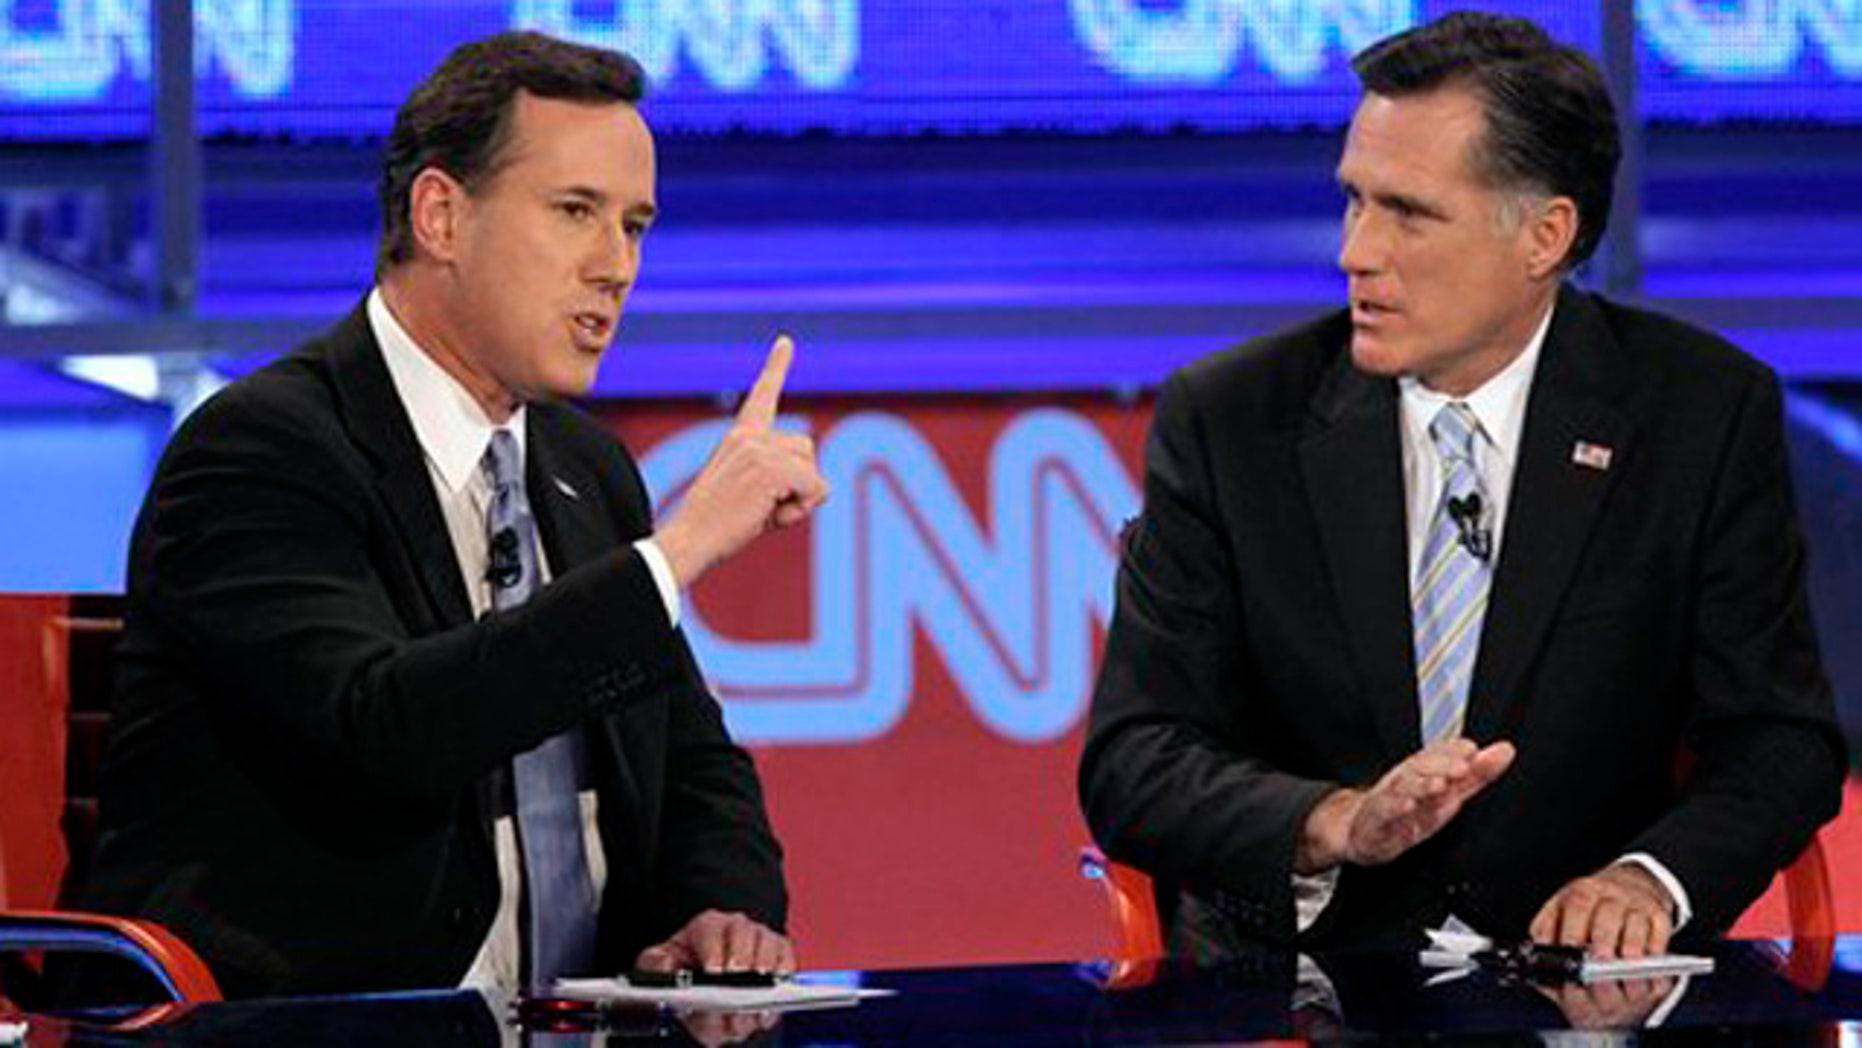 Feb. 22, 2012: Republican presidential candidate, former Pennsylvania Sen. Rick Santorum, left, makes a point as former Massachusetts Gov. Mitt Romney listens during a Republican presidential debate in Mesa, Ariz.